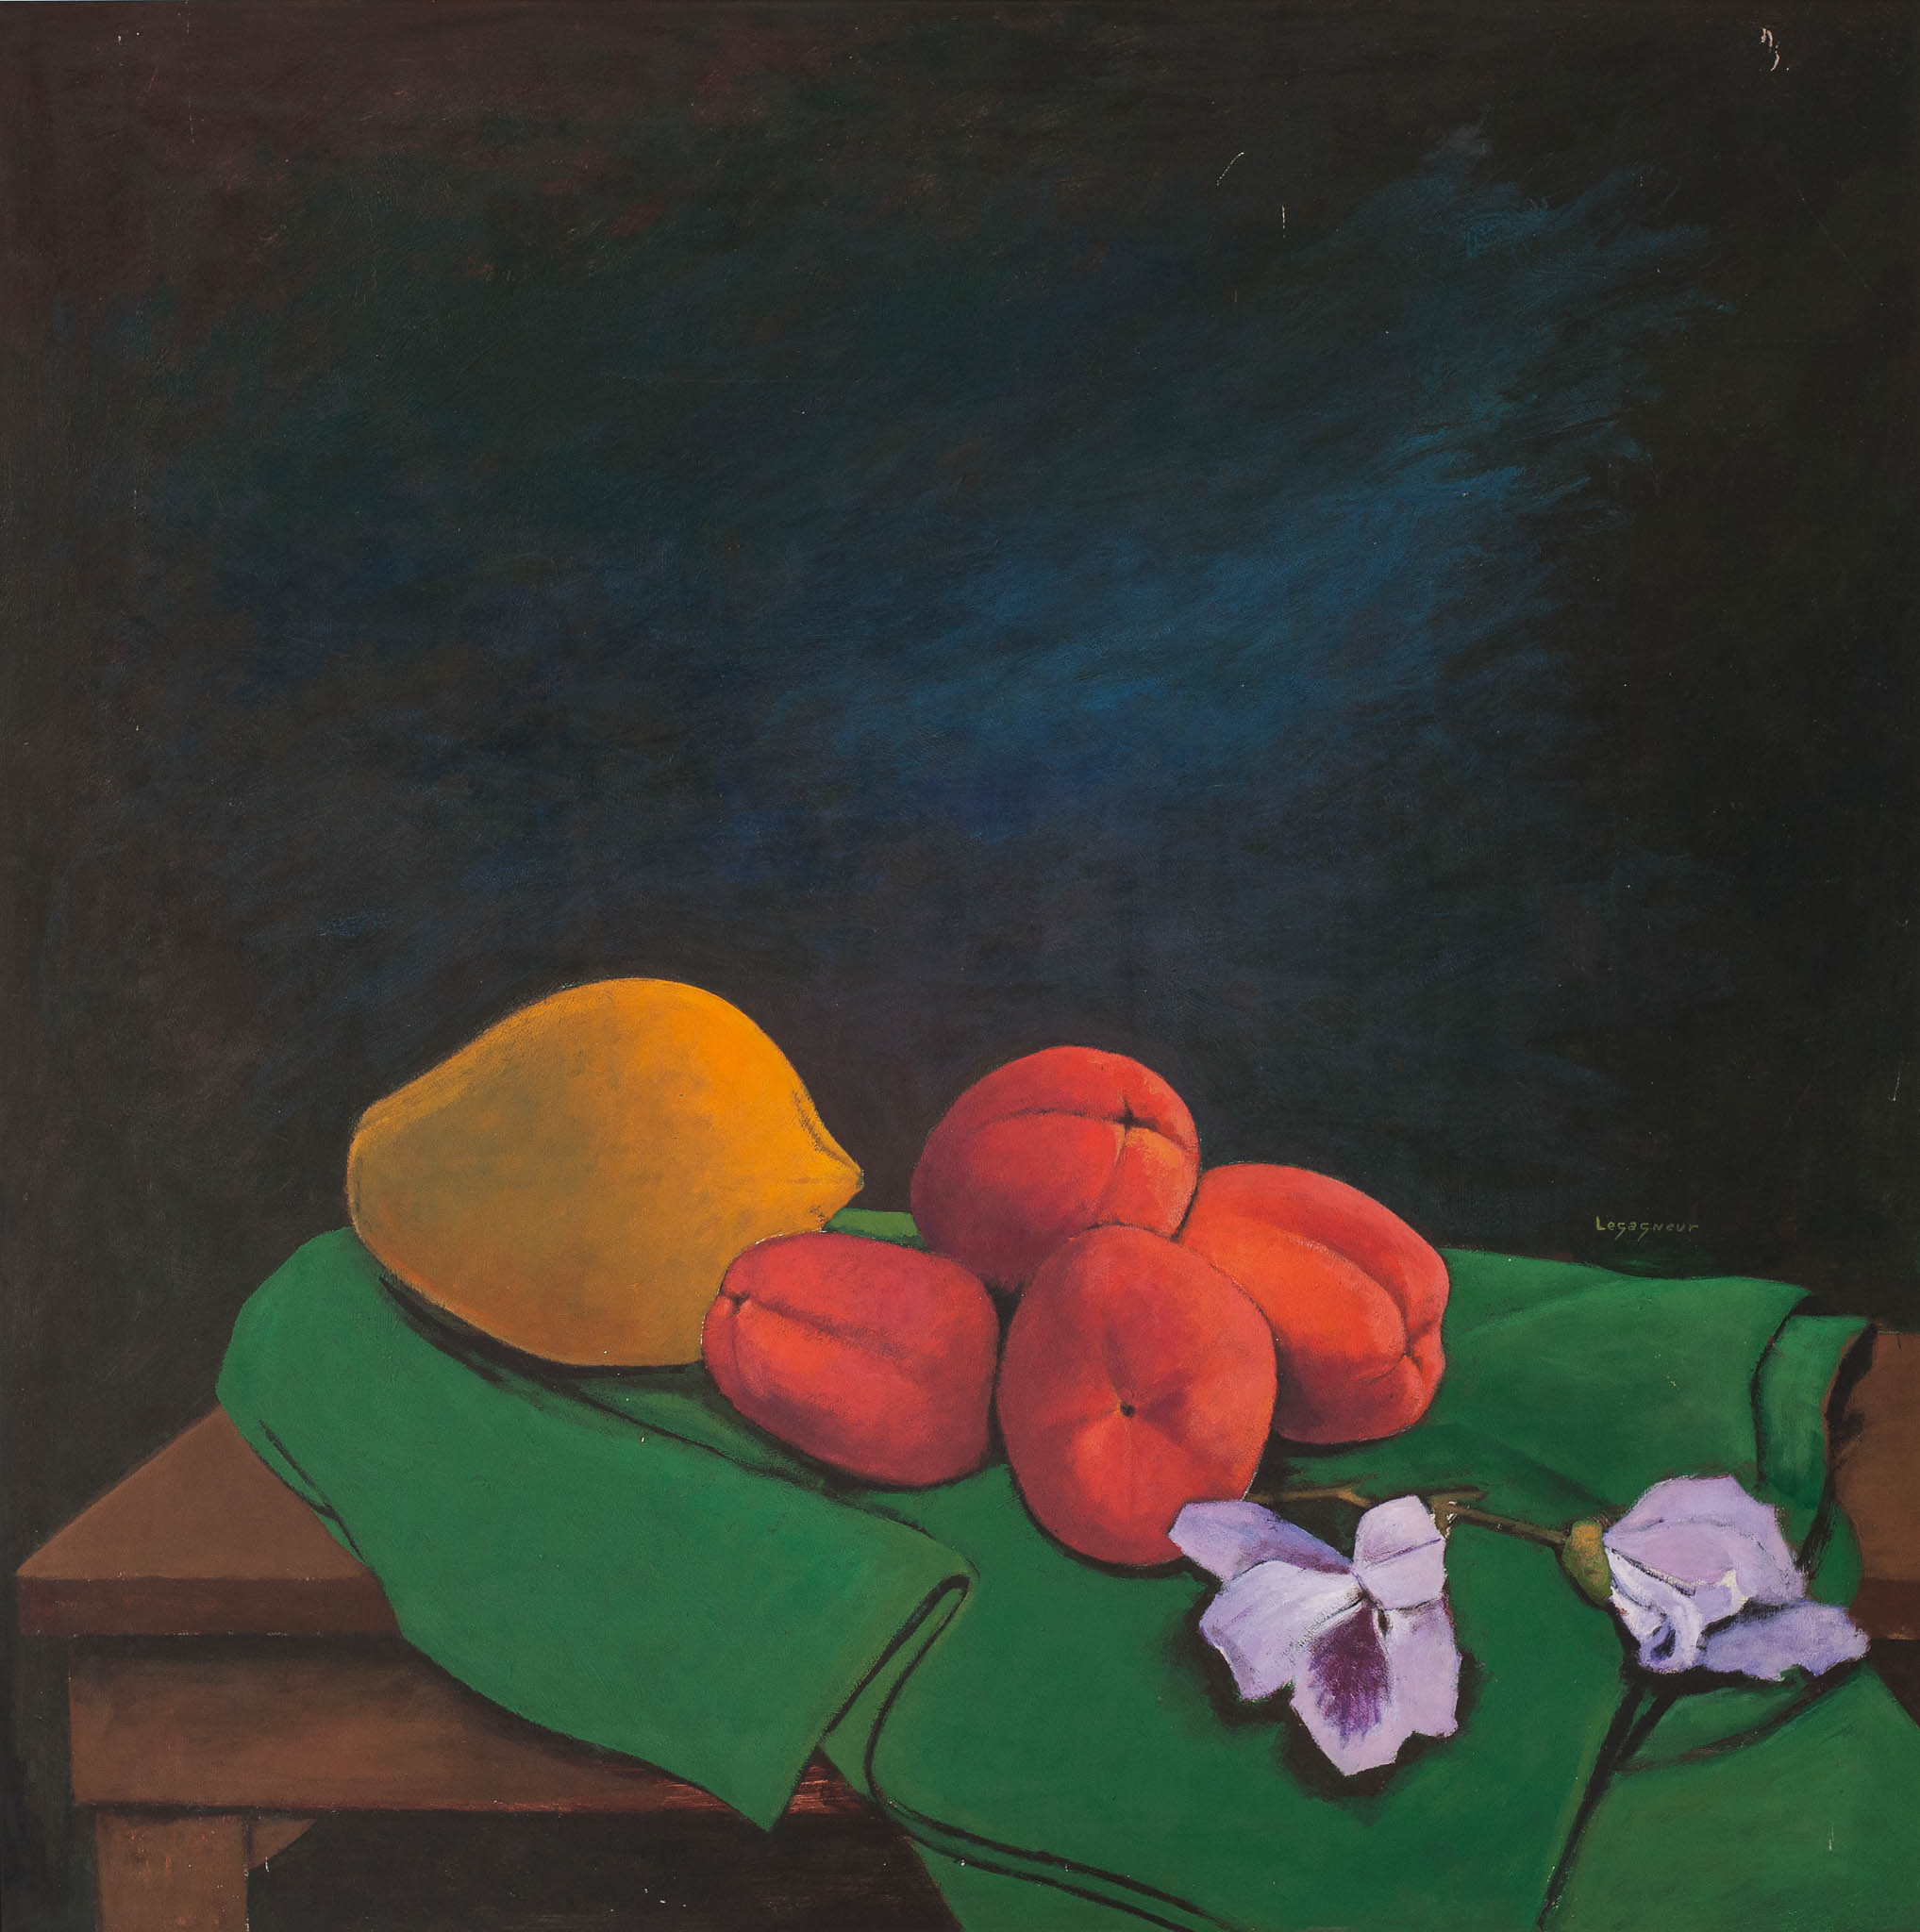 Fruit and Flowers, 1996